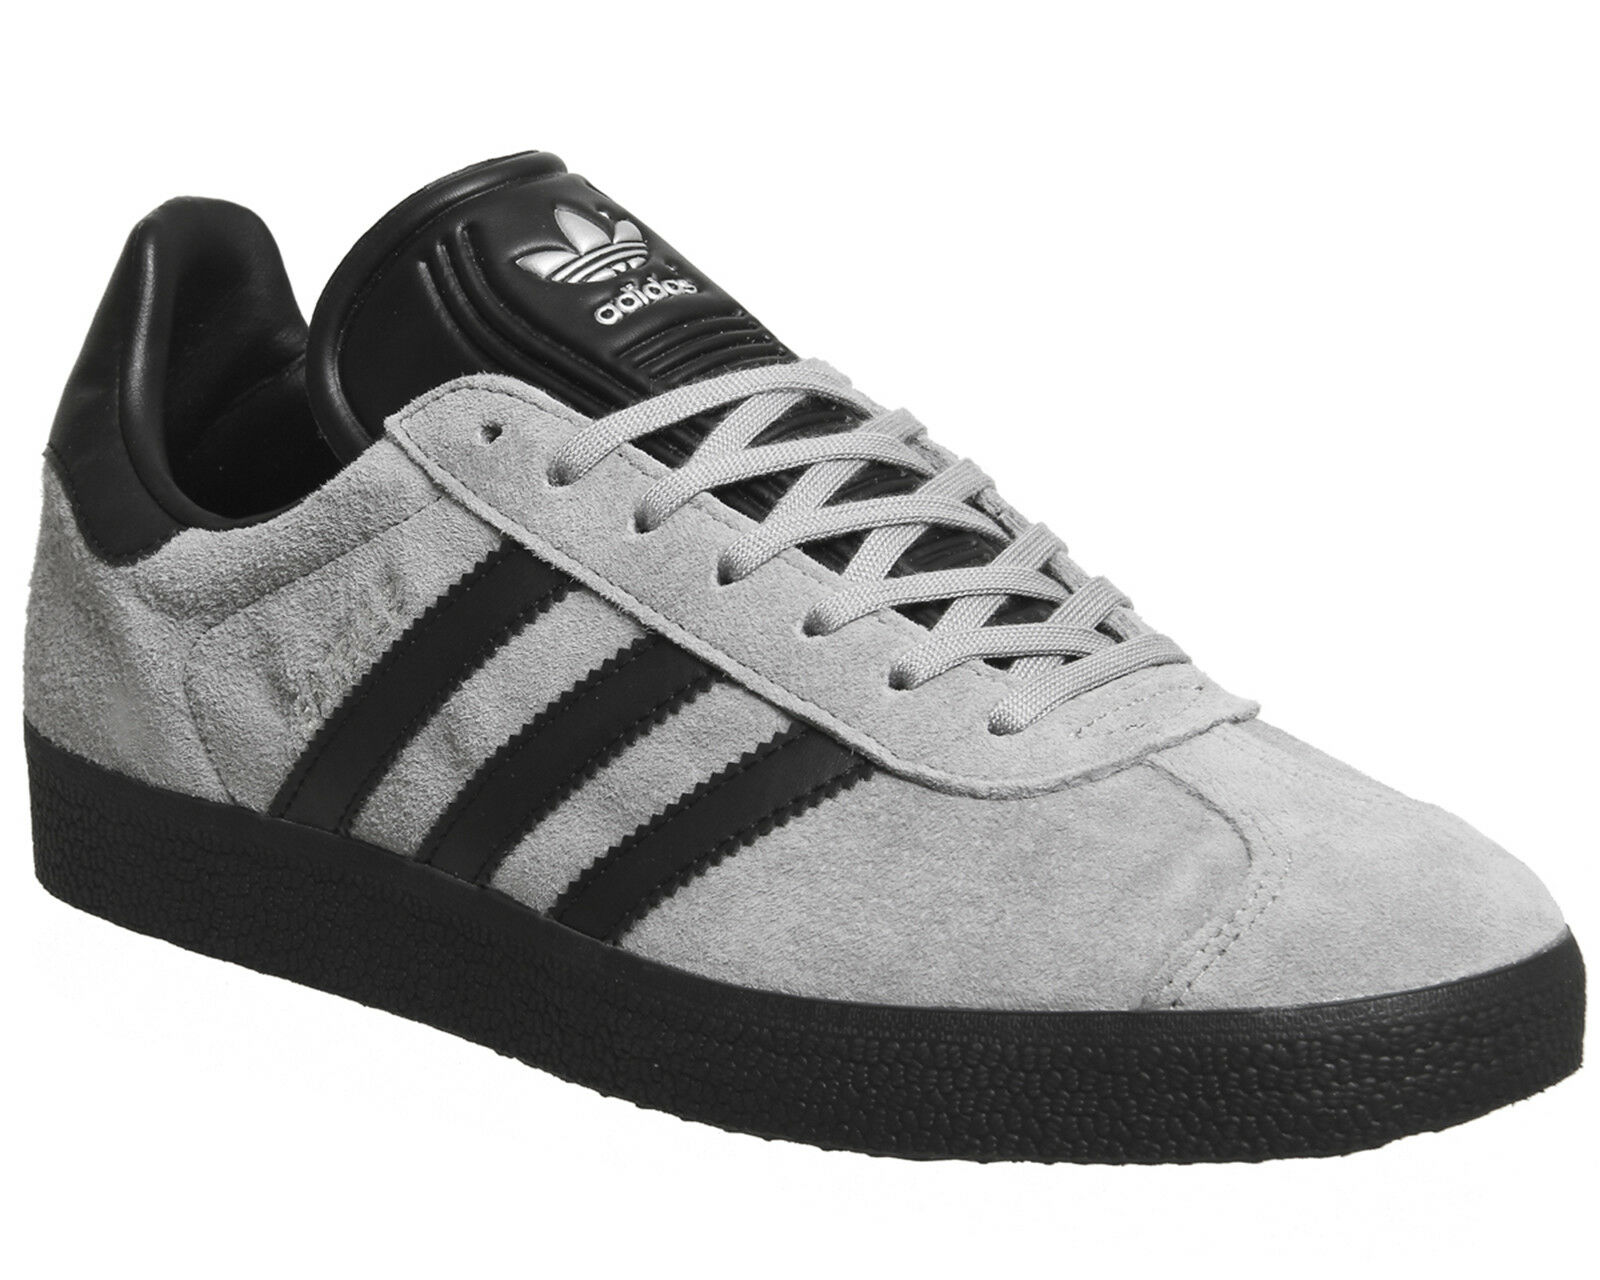 Mens Adidas Gazelle Trainers GREY BLACK EXCLUSIVE Trainers Shoes